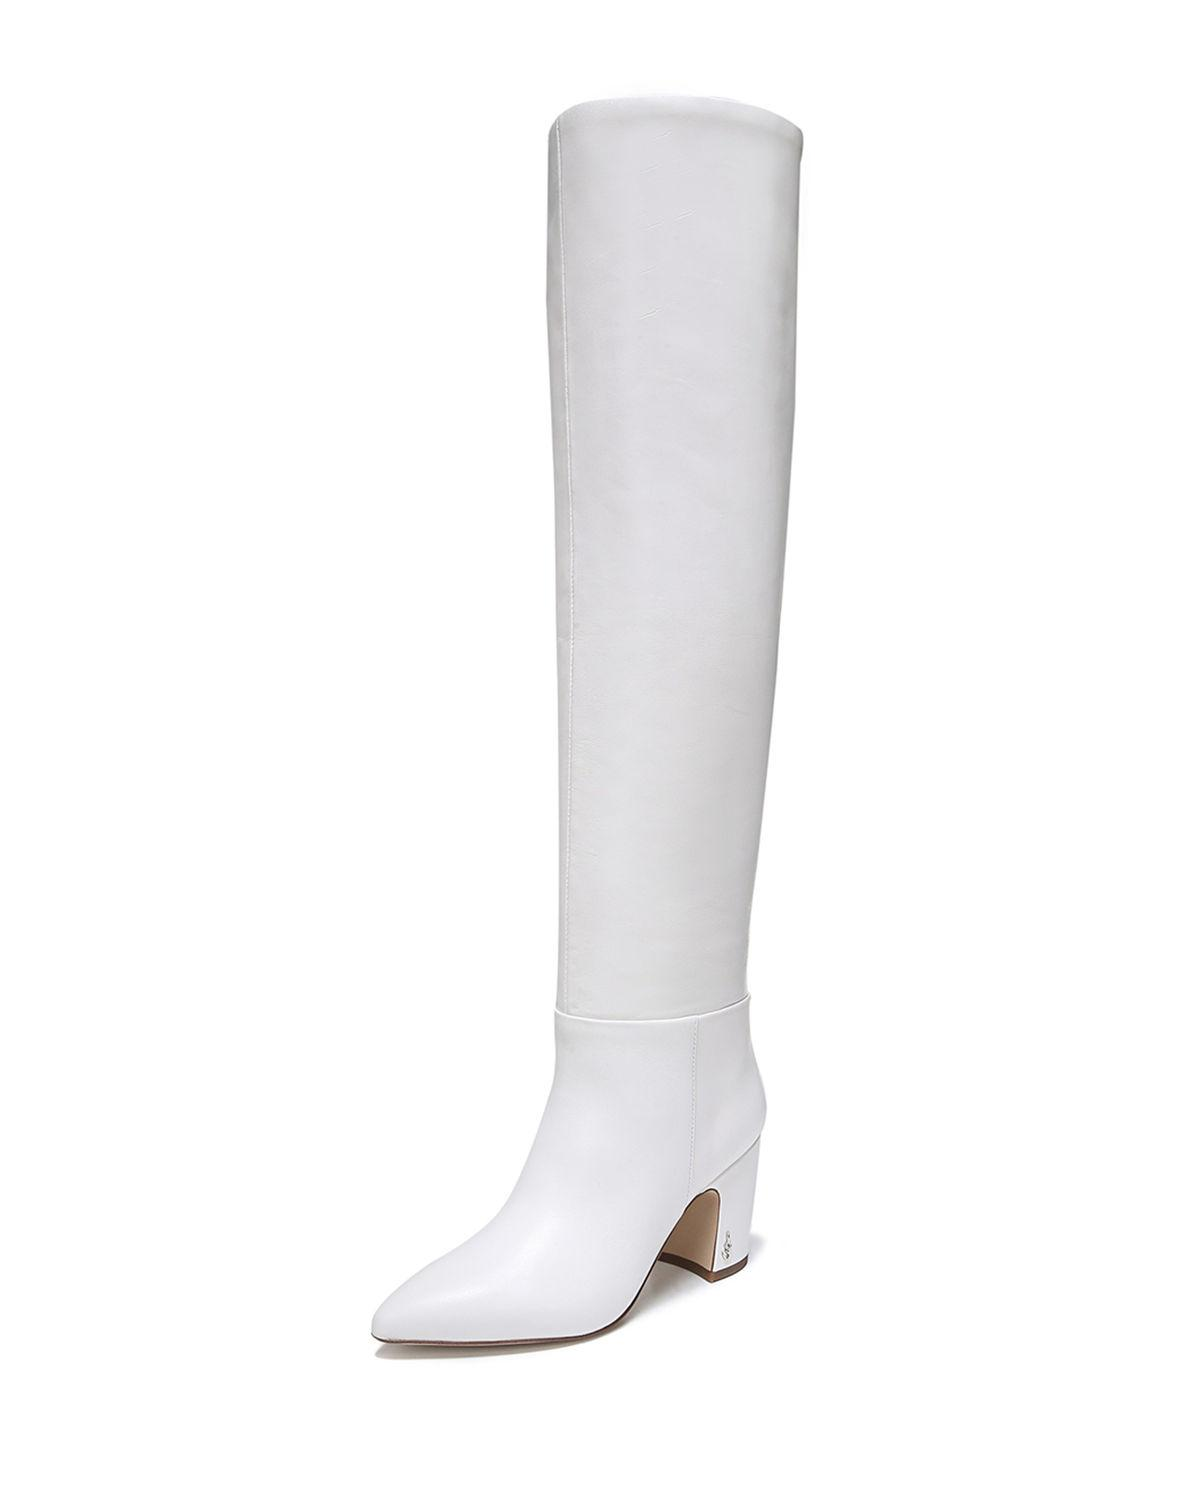 cce773870f64 Sam Edelman Women s Hutton Leather Over-The-Knee Boots In Bright White  Leather